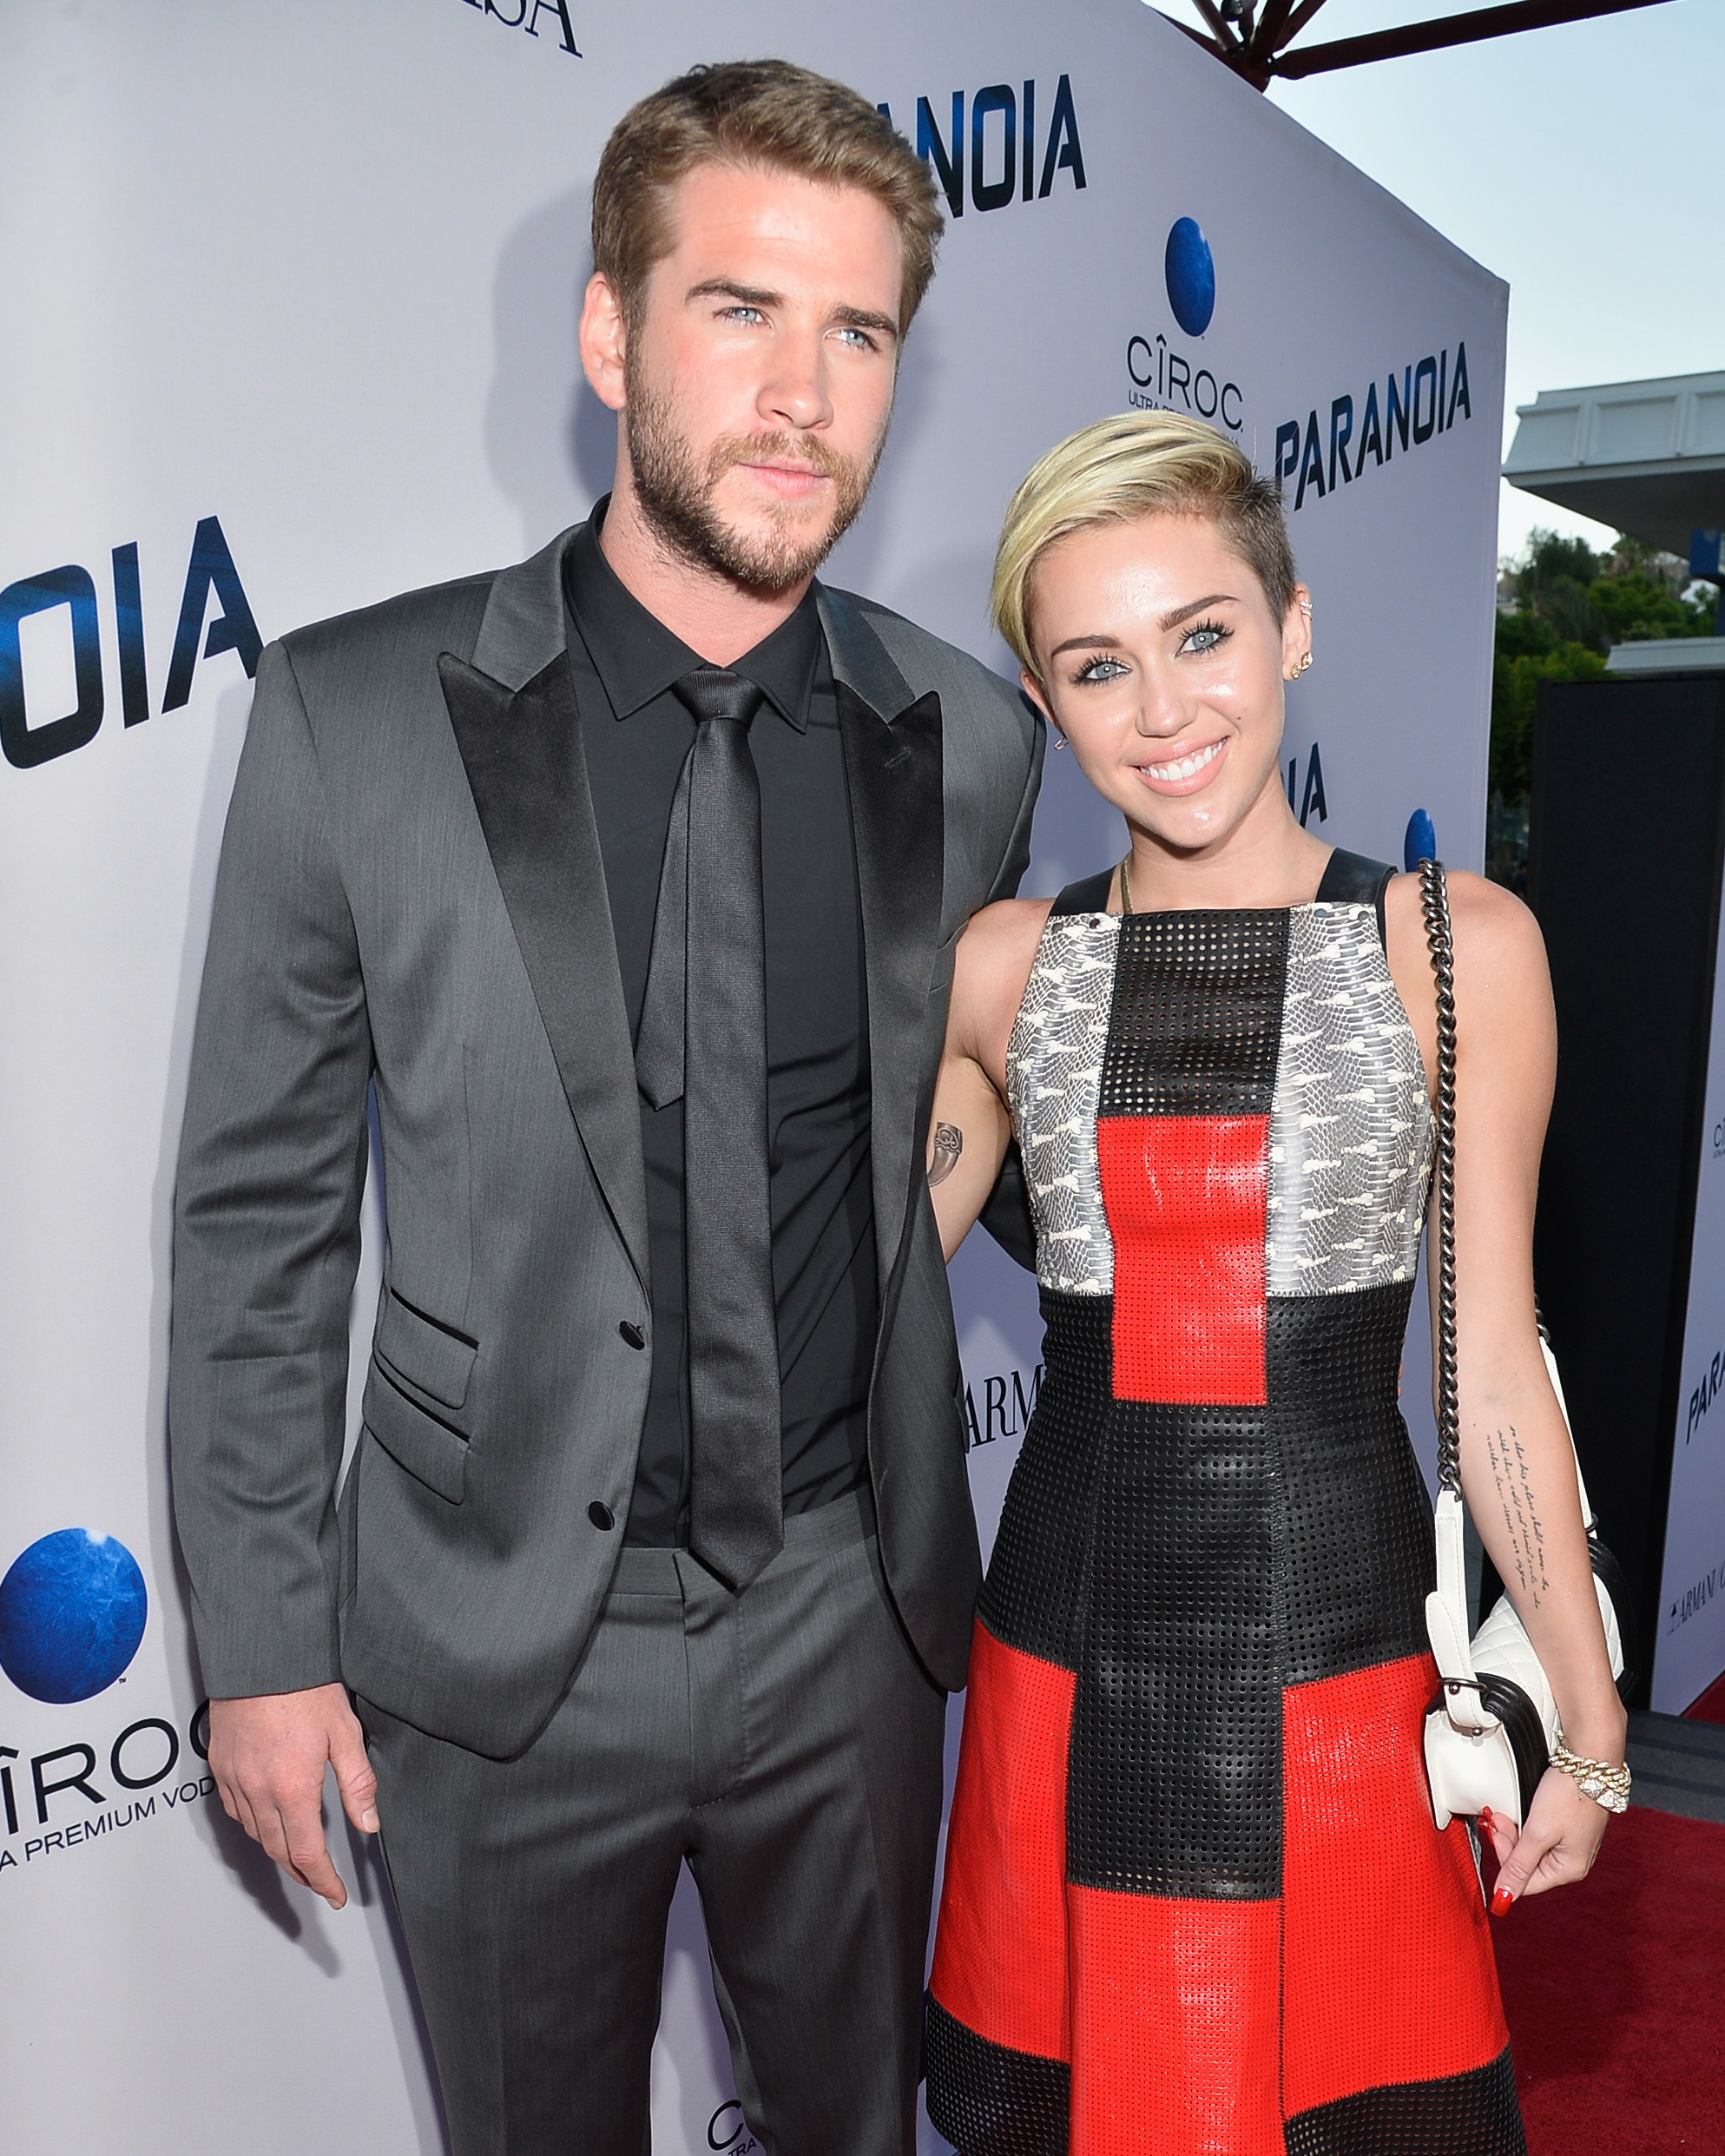 miley-cyrus-liam-hemsworth-engaged-0116_web.jpg